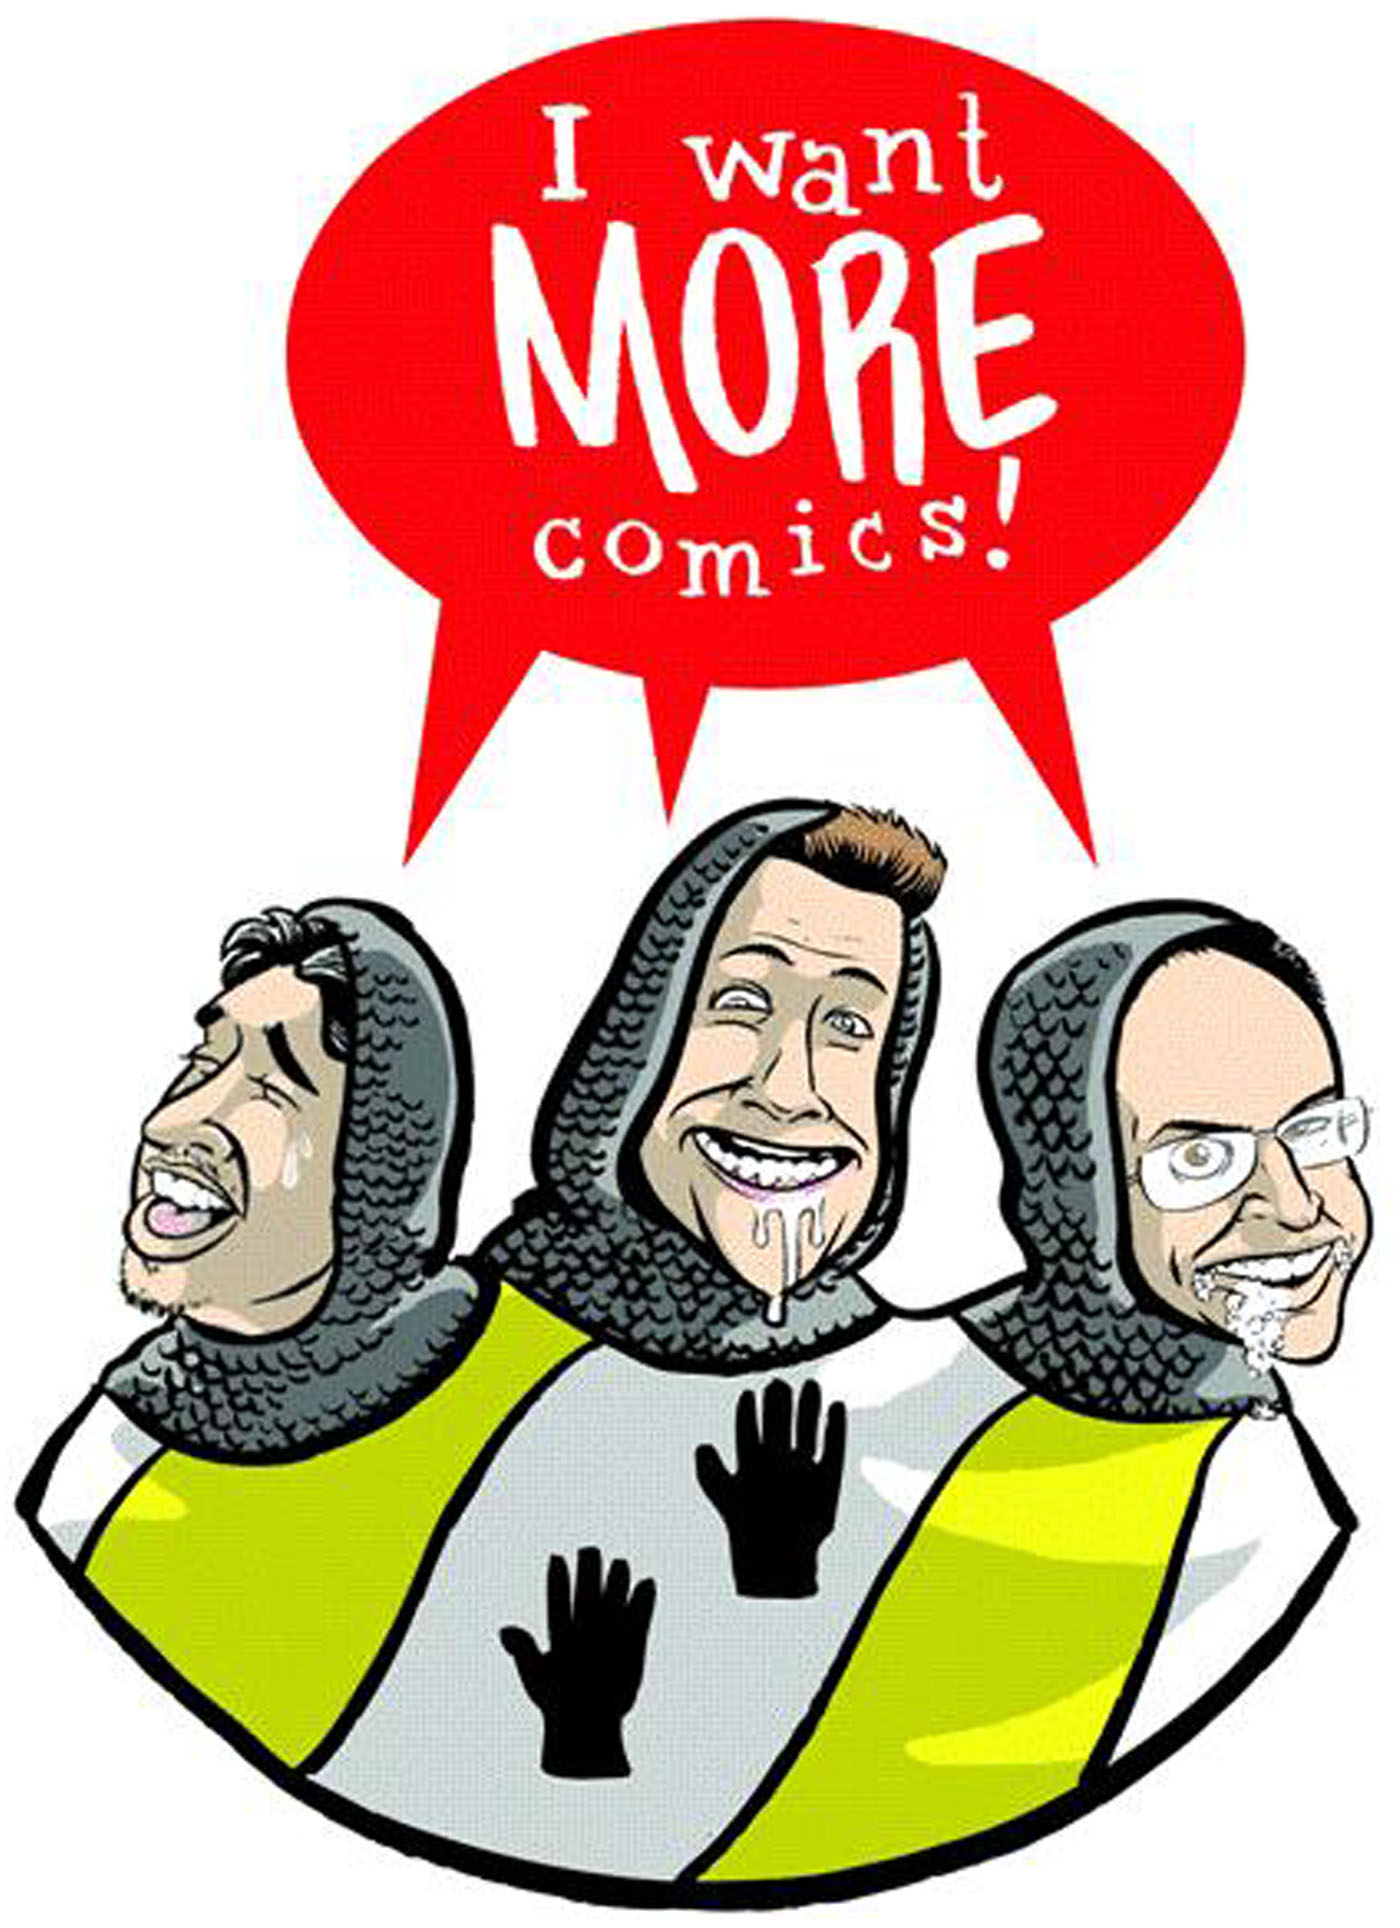 Episode #26 - Real Life Politics and Events In Comics